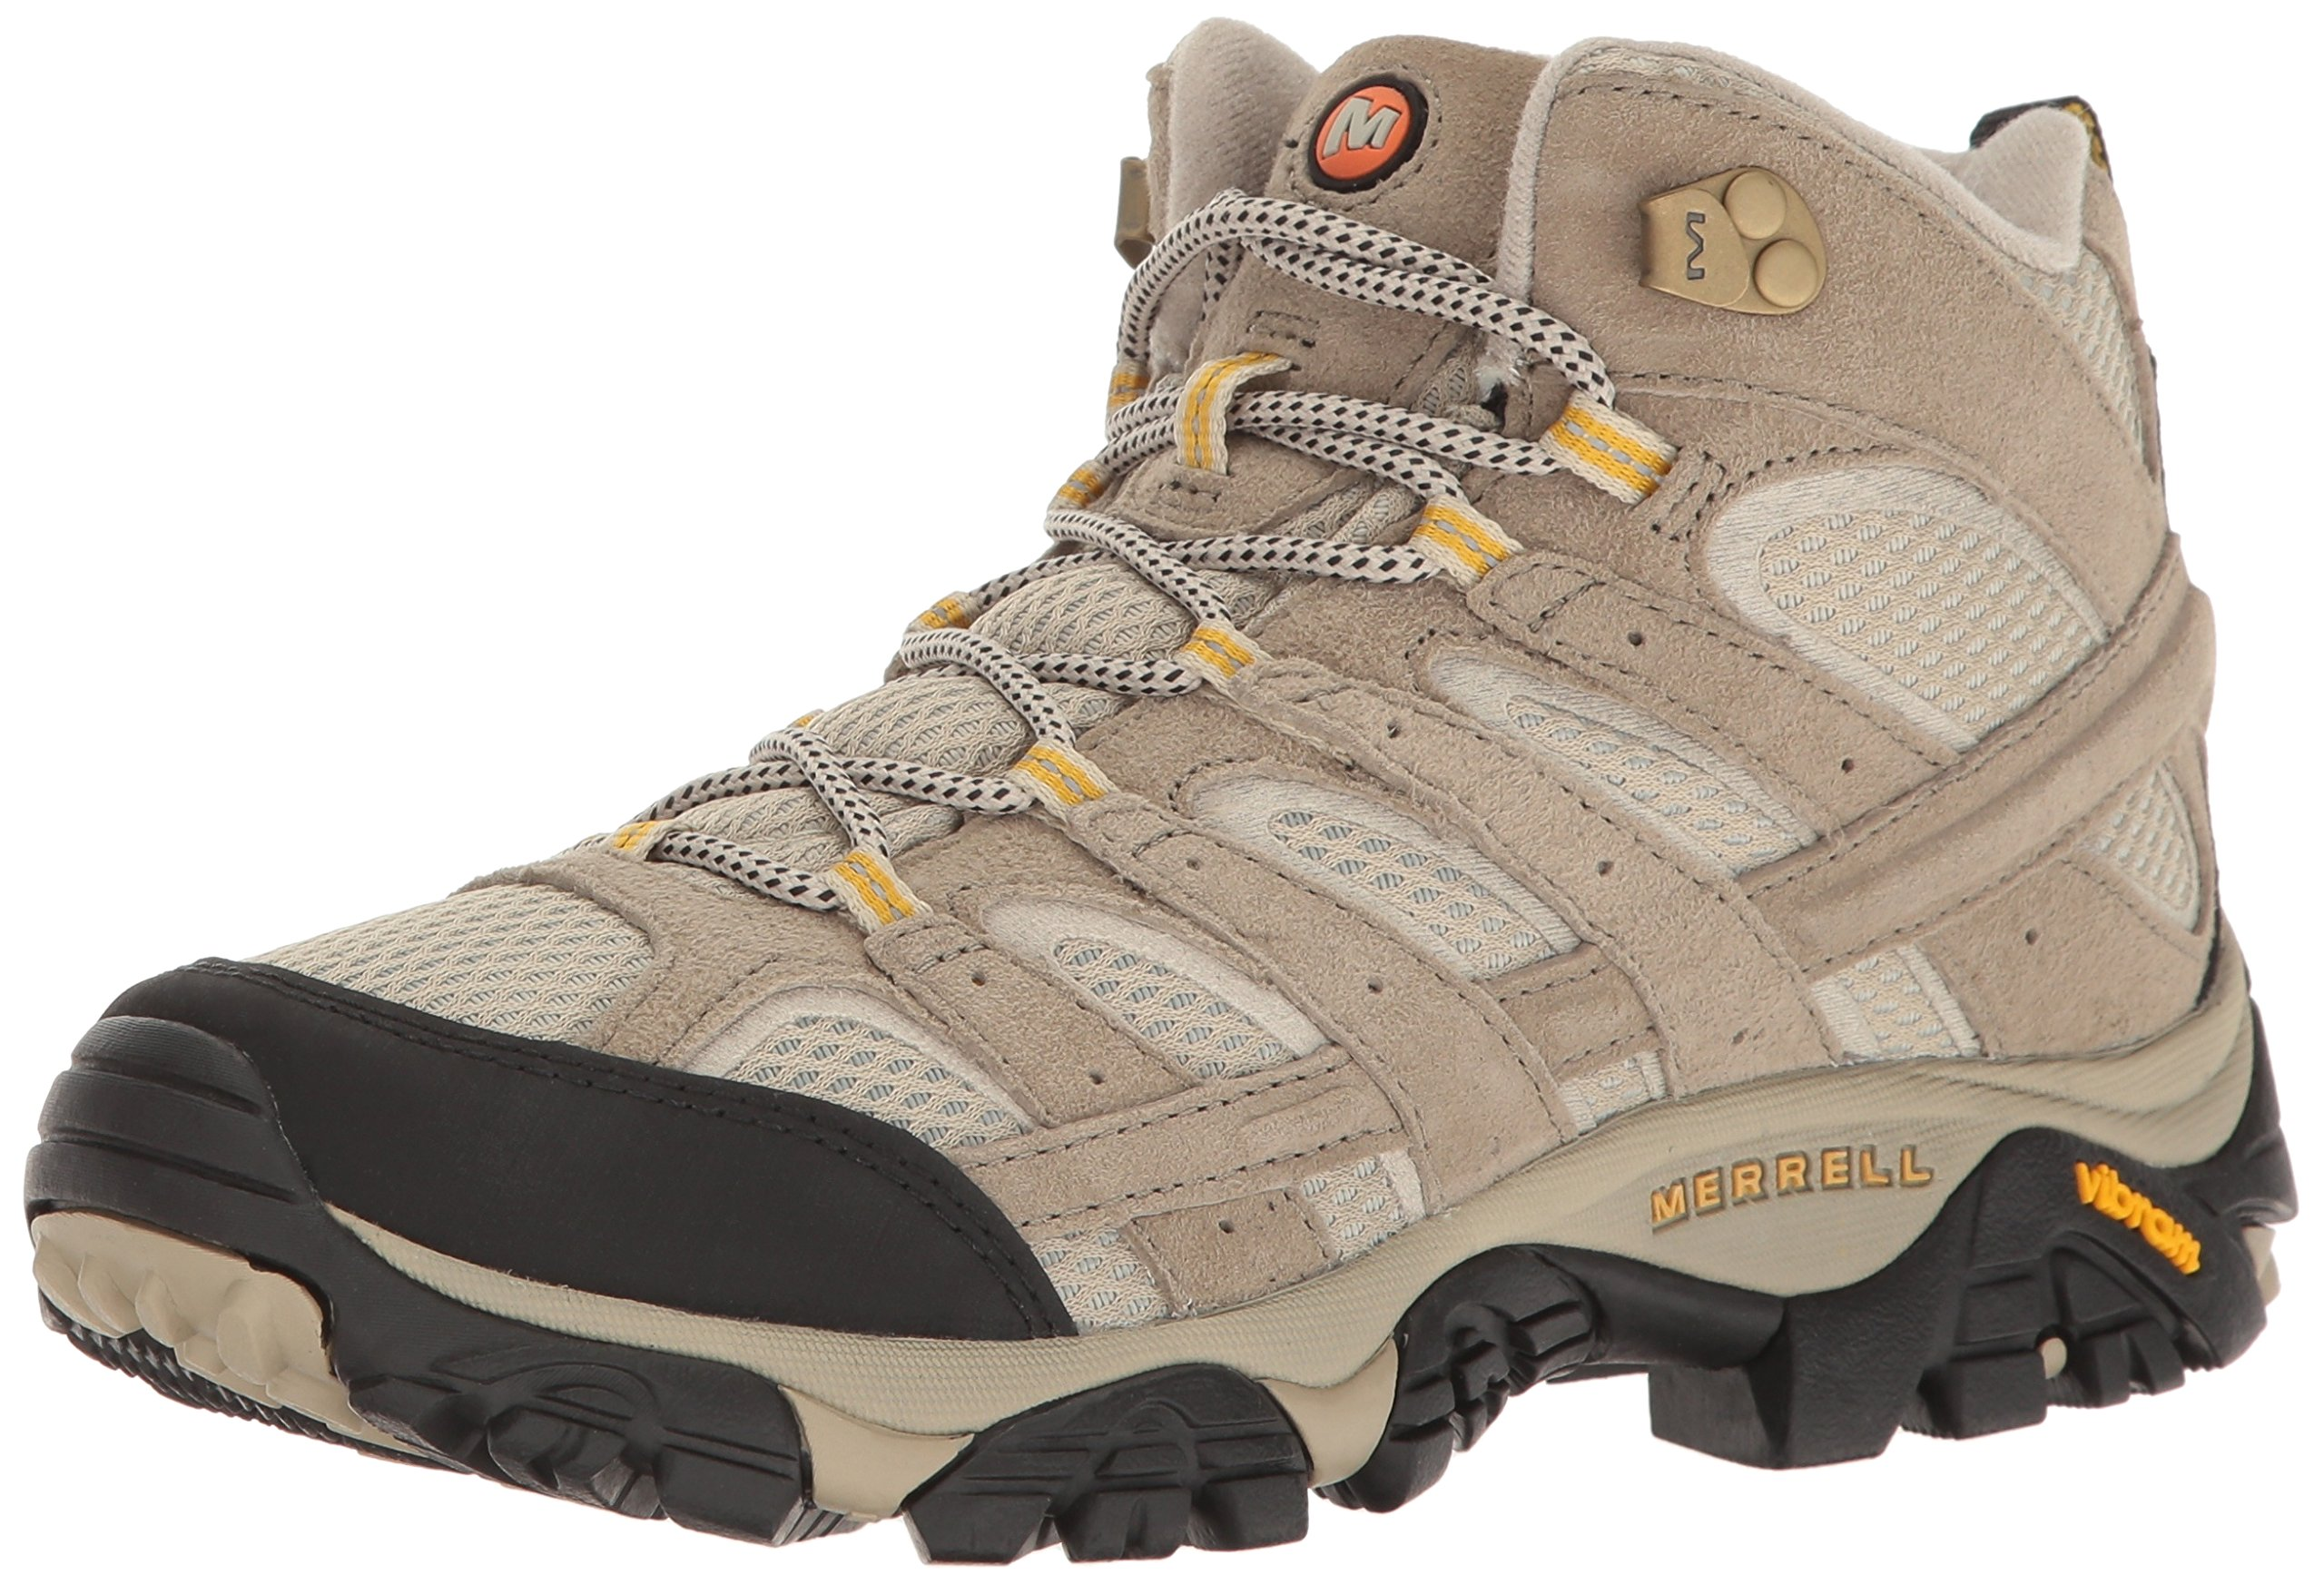 Merrell Women's Moab 2 Vent Mid Hiking Boot, Taupe, 9.5 M US